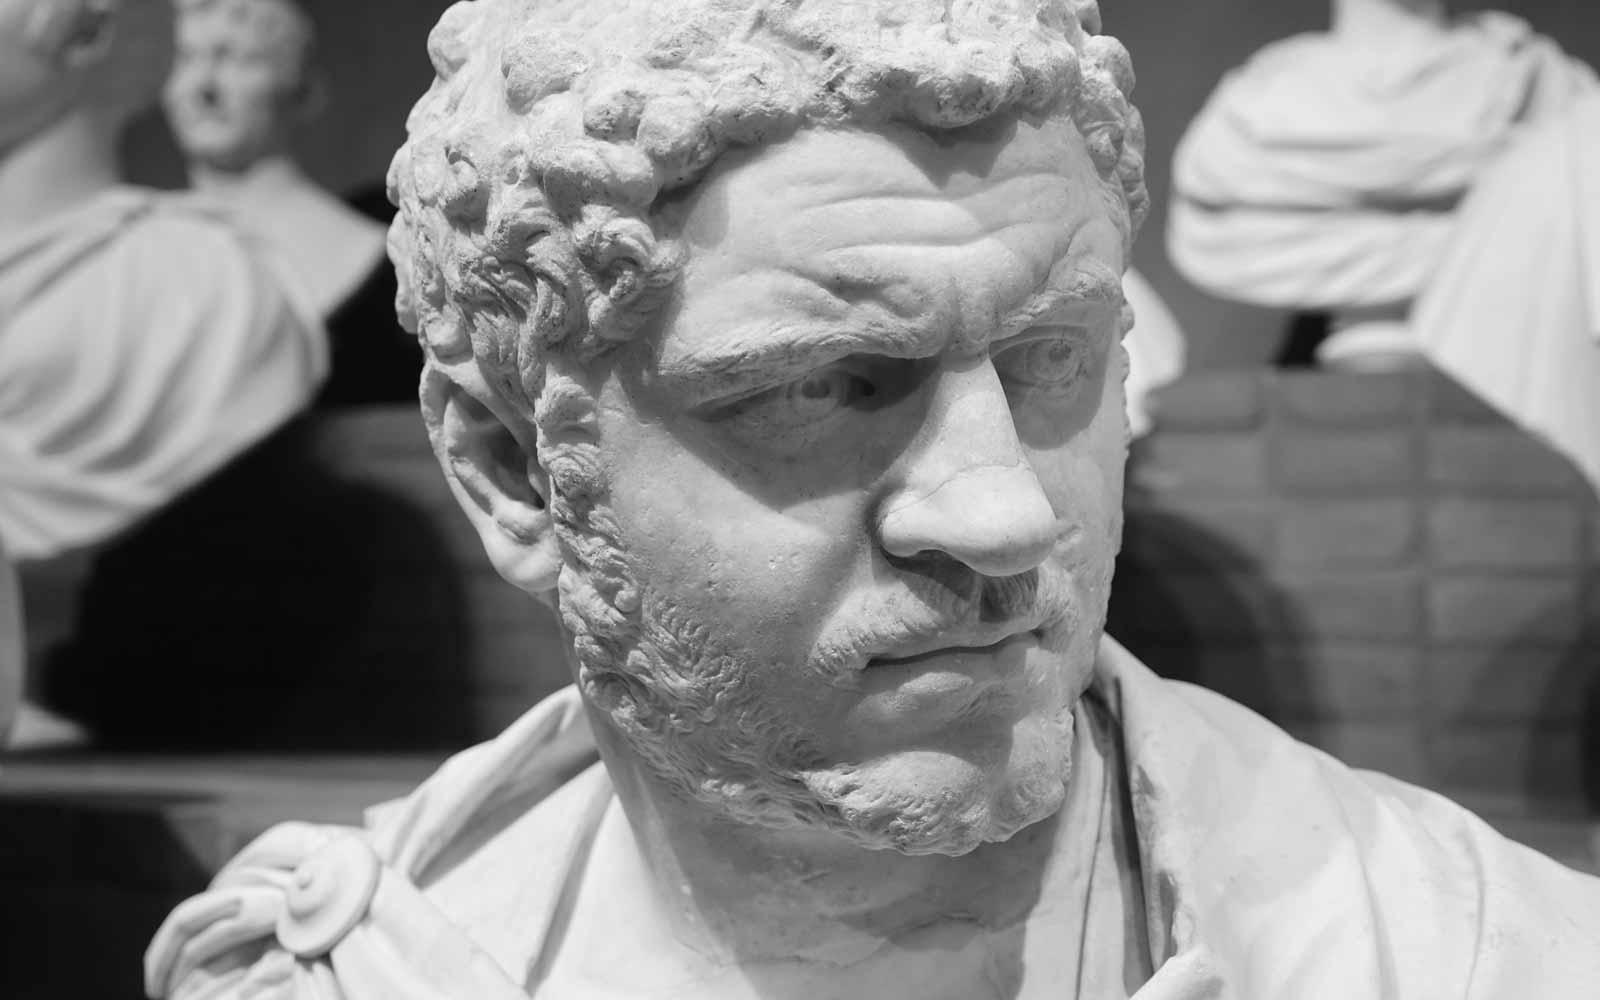 The-Emperor-Caracalla